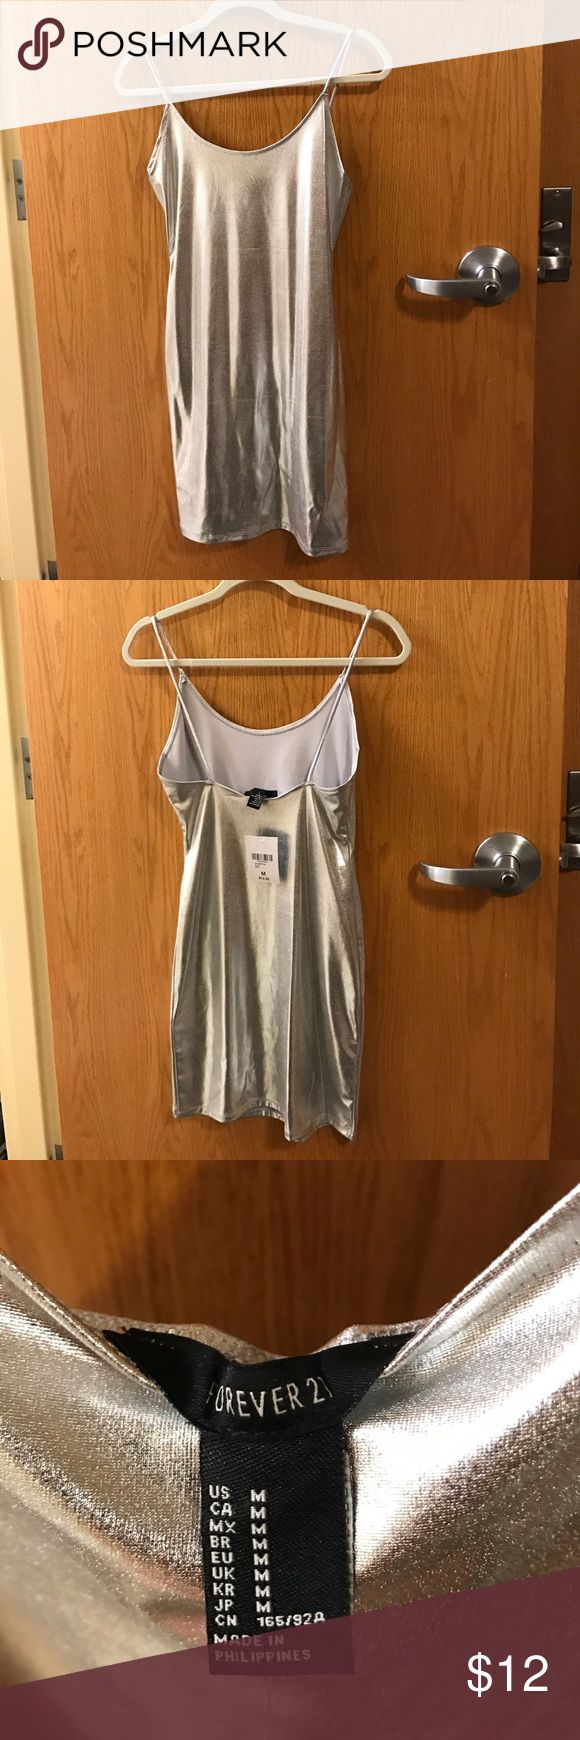 NWT Forever 21 Metallic Cami Dress Brand new with tags Forever 21 silver cami dress! Super simple dress, very shiny. True to size. Has a good stretch to it as well, very fun and flattering! Forever 21 Dresses Mini